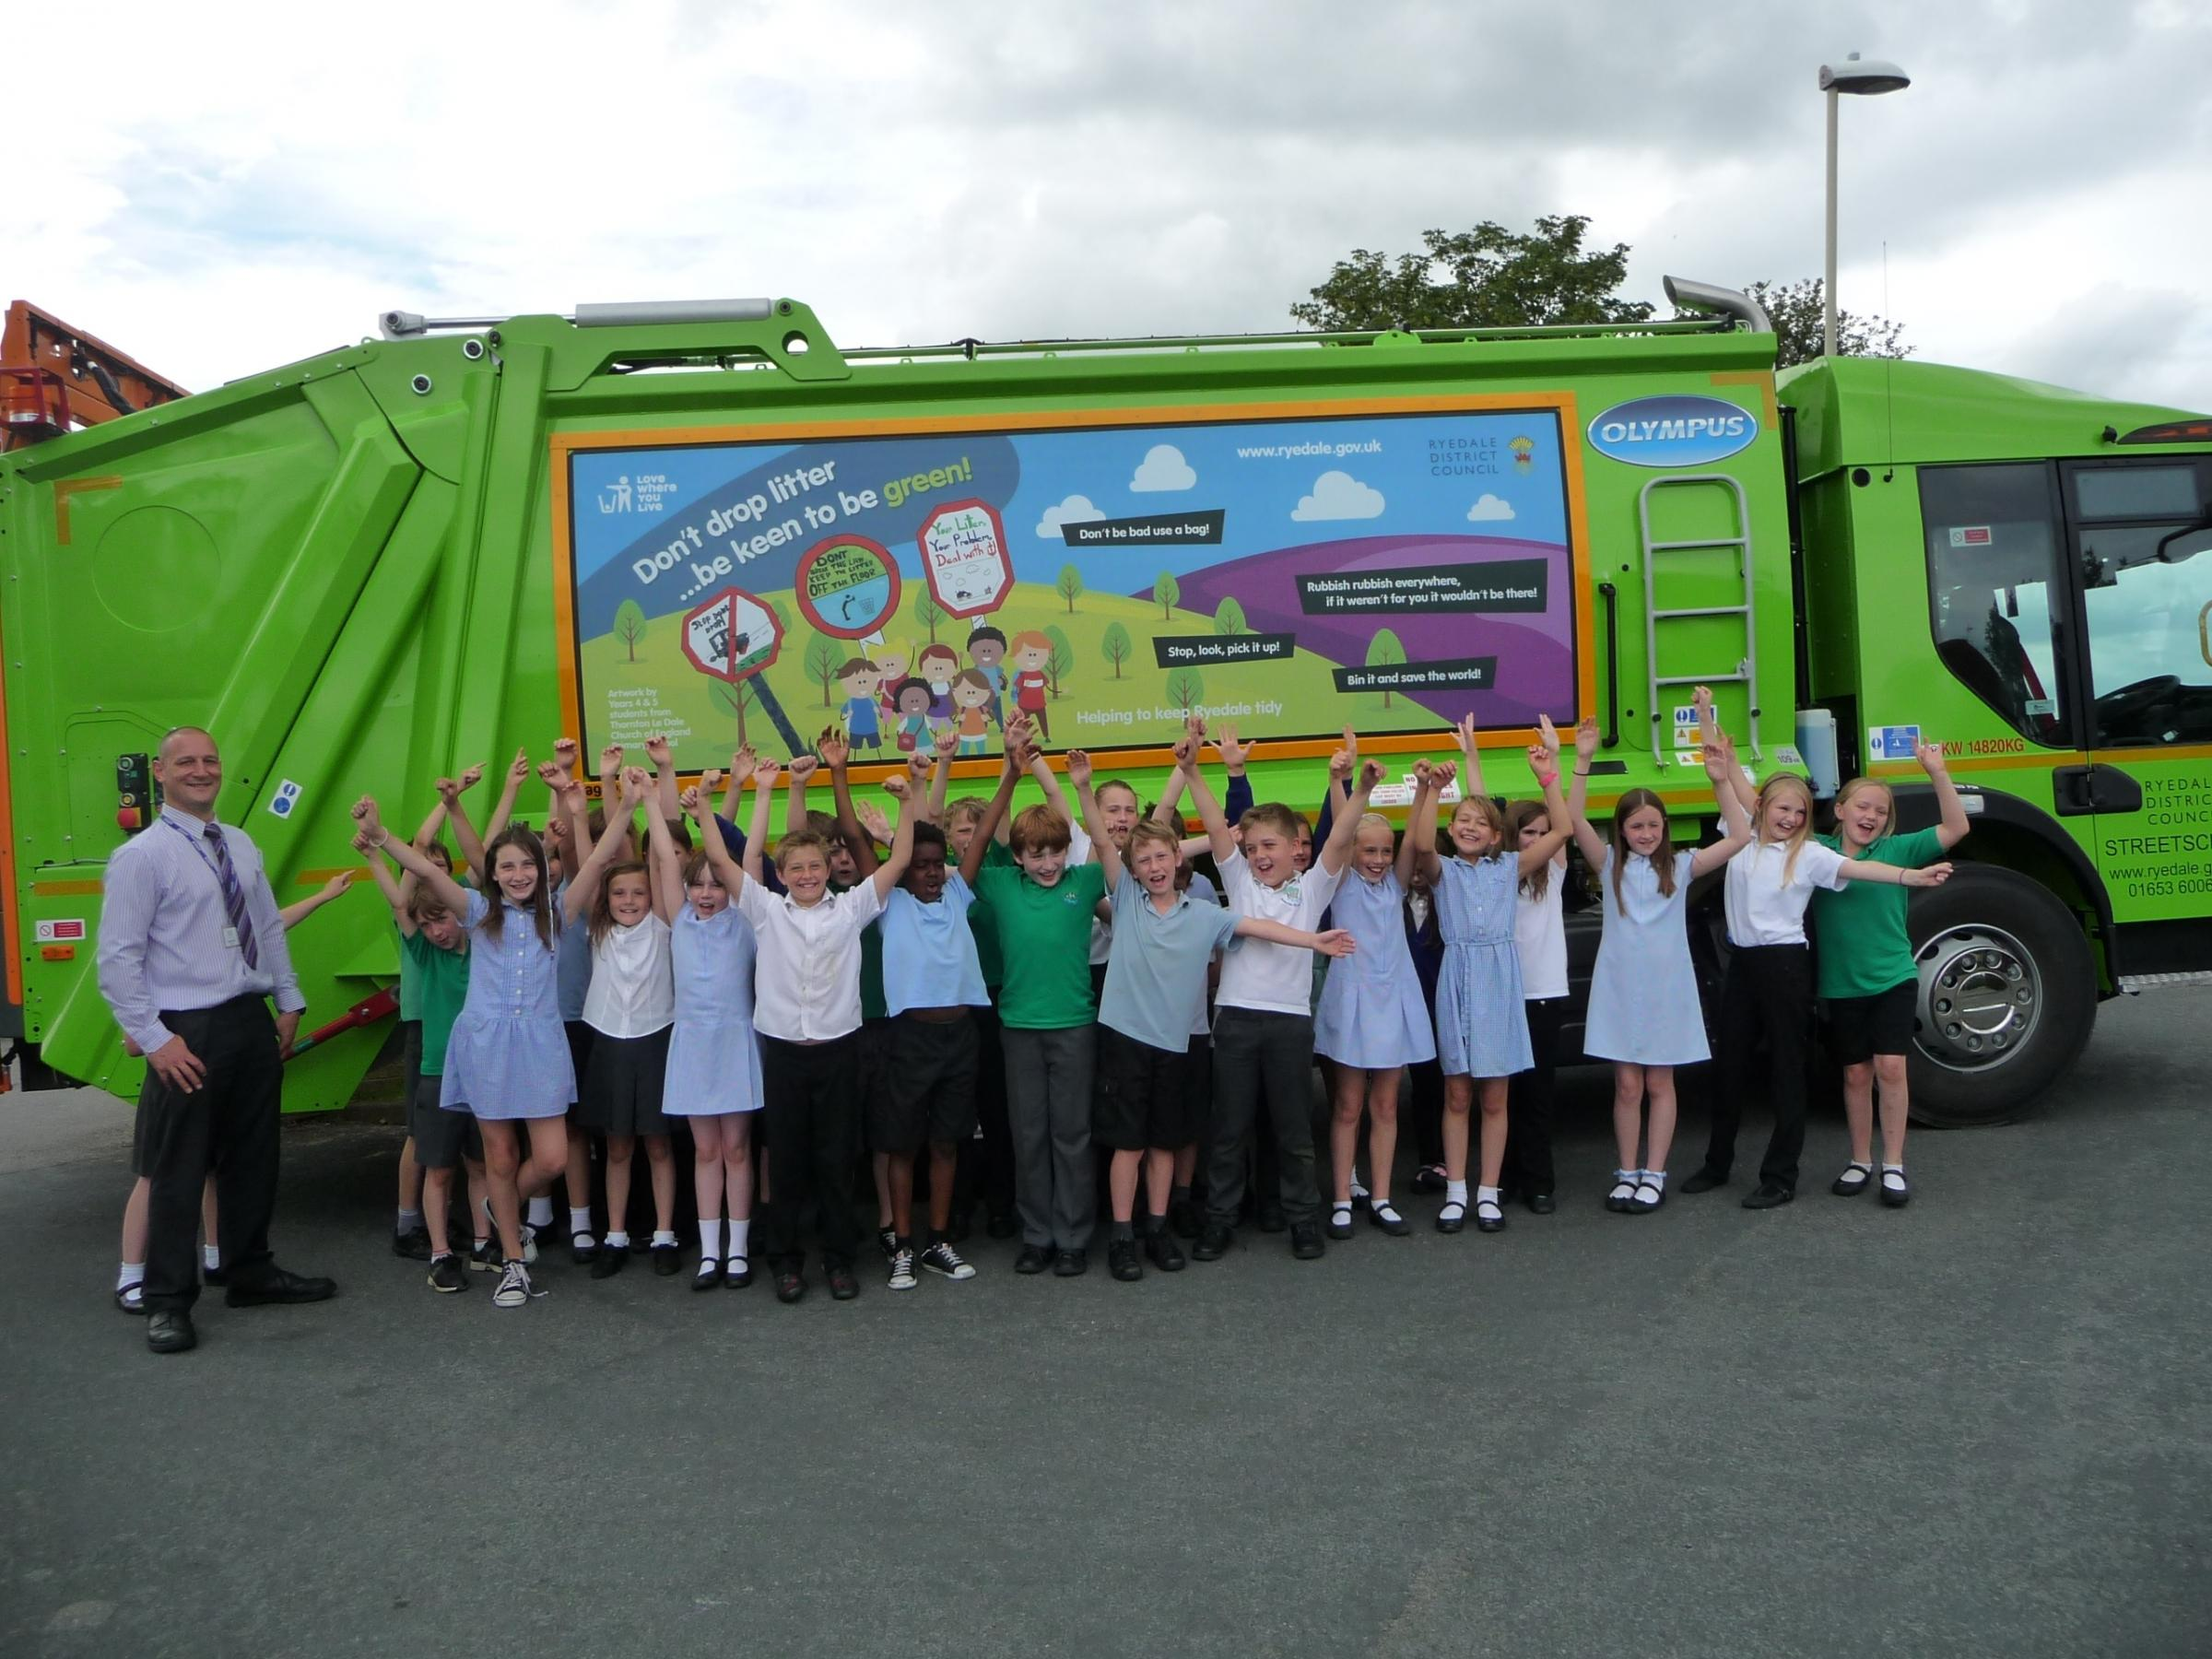 CLEAN UP: Teacher Dave Cash and pupils from Thornton le Dale primary school showing off their artwork design on the side of a waste collection vehicle.